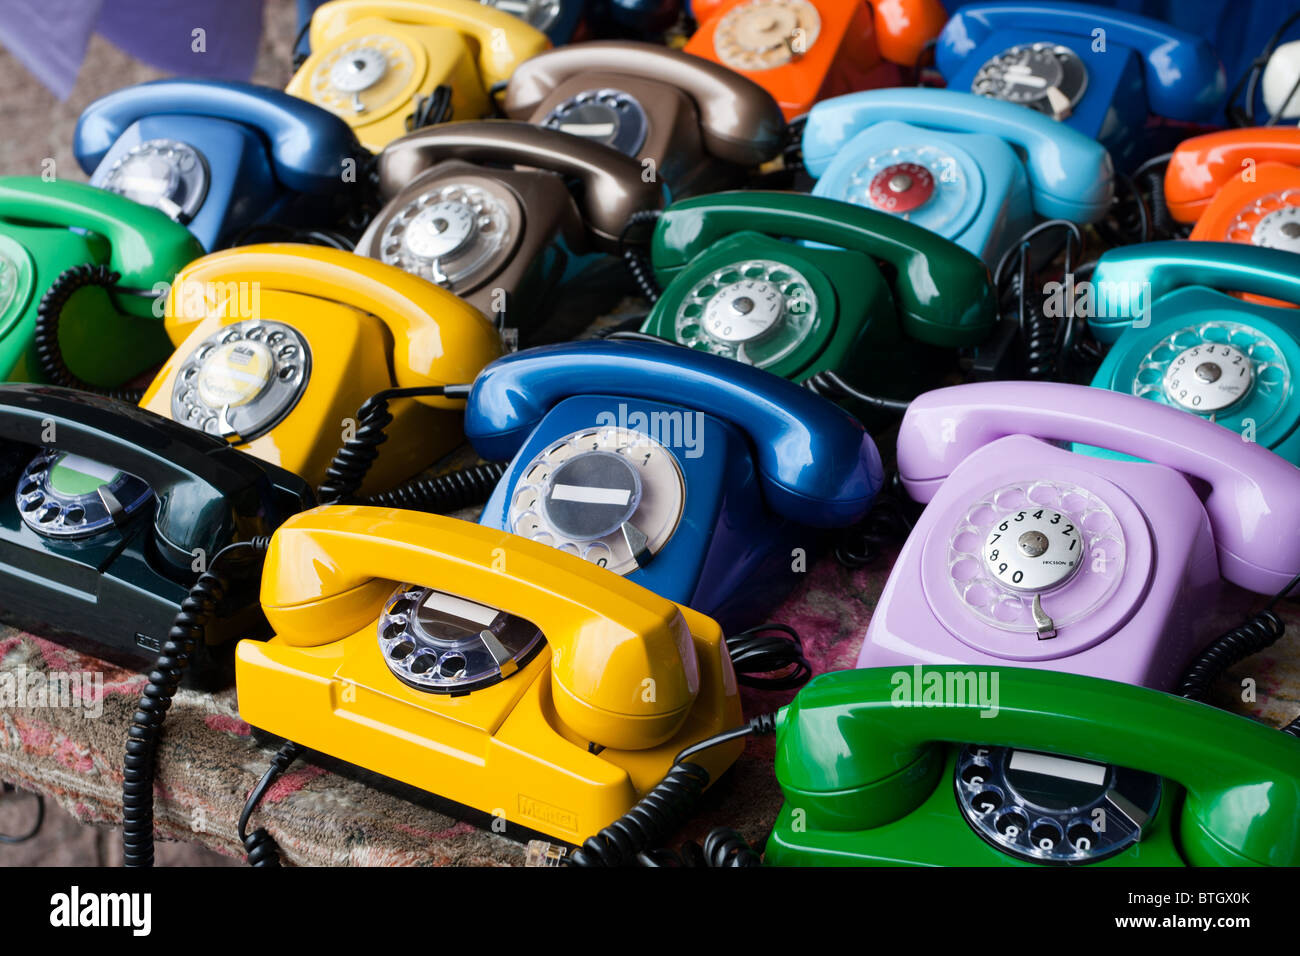 Colourful rotary dial telephones, Sao Paulo, Brazil - Stock Image